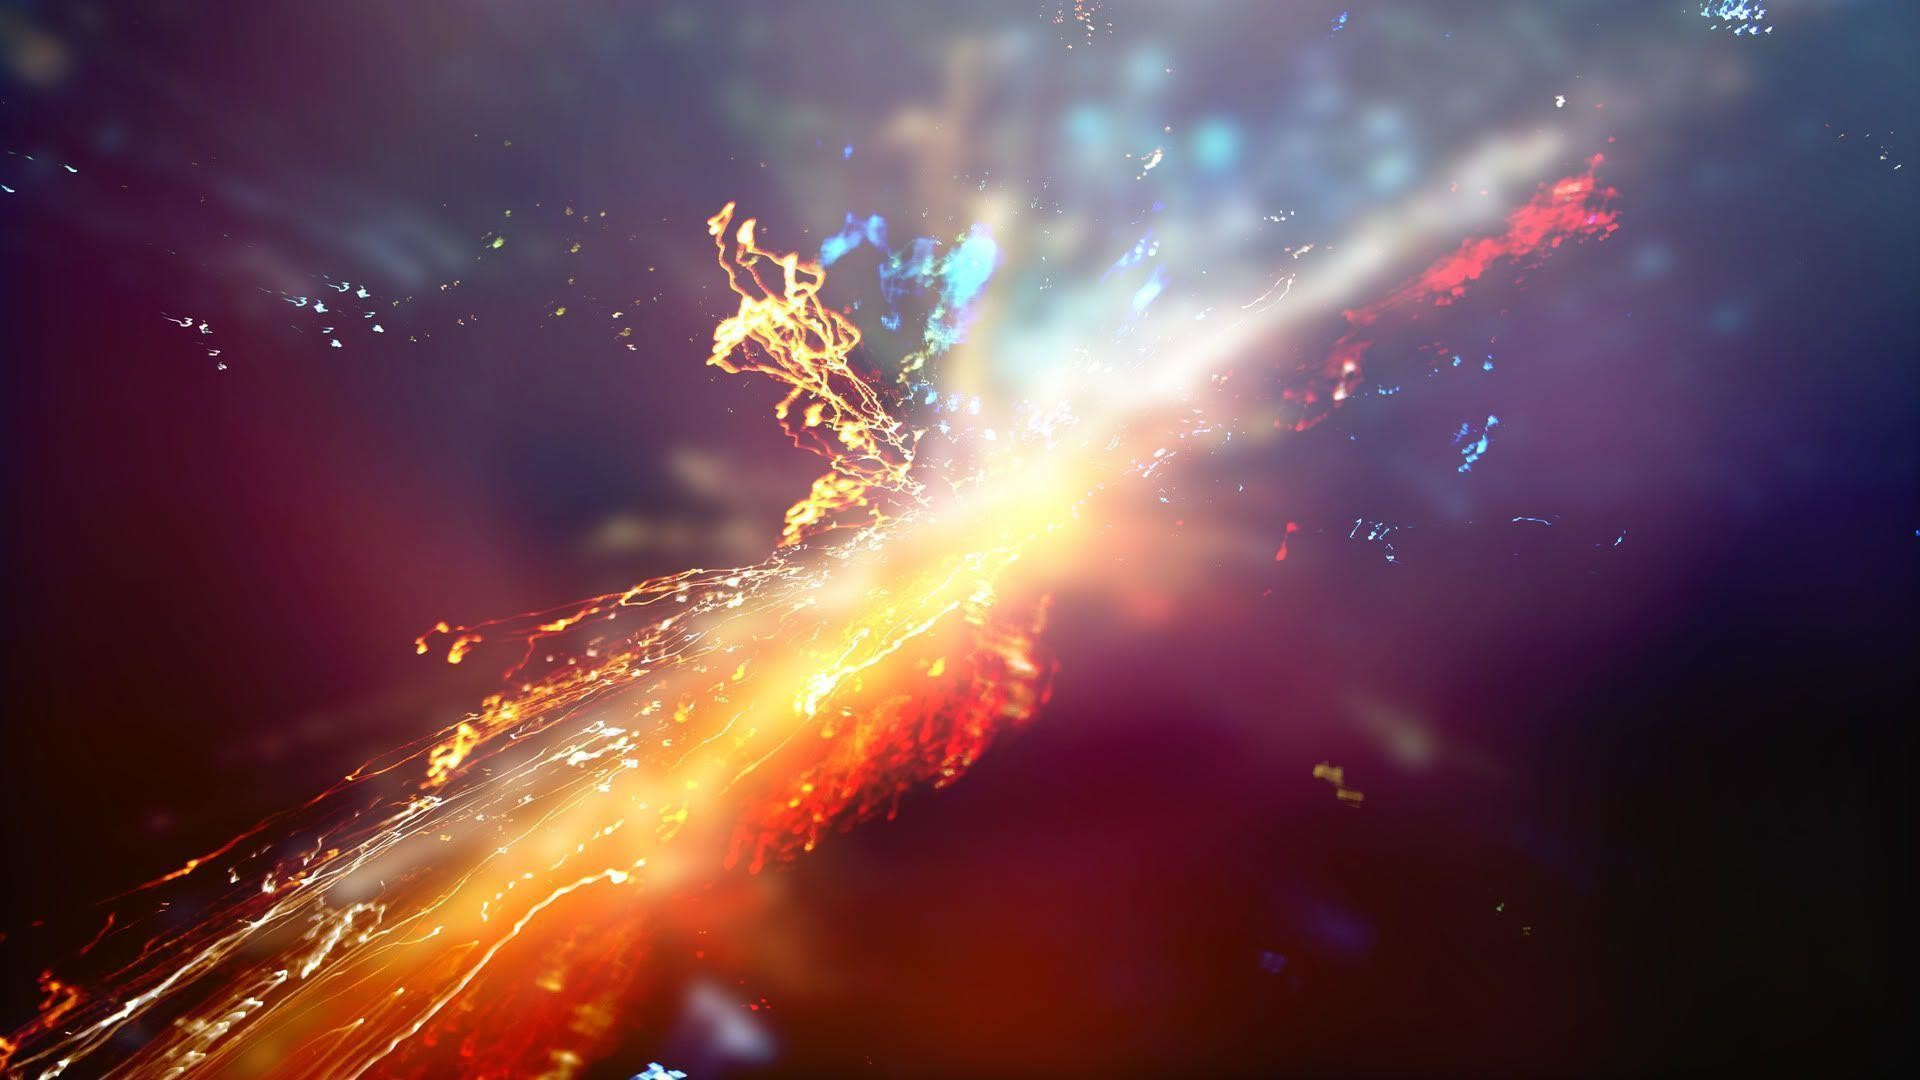 Res: 1920x1080, Particle Physics Wallpaper - WallpaperSafari